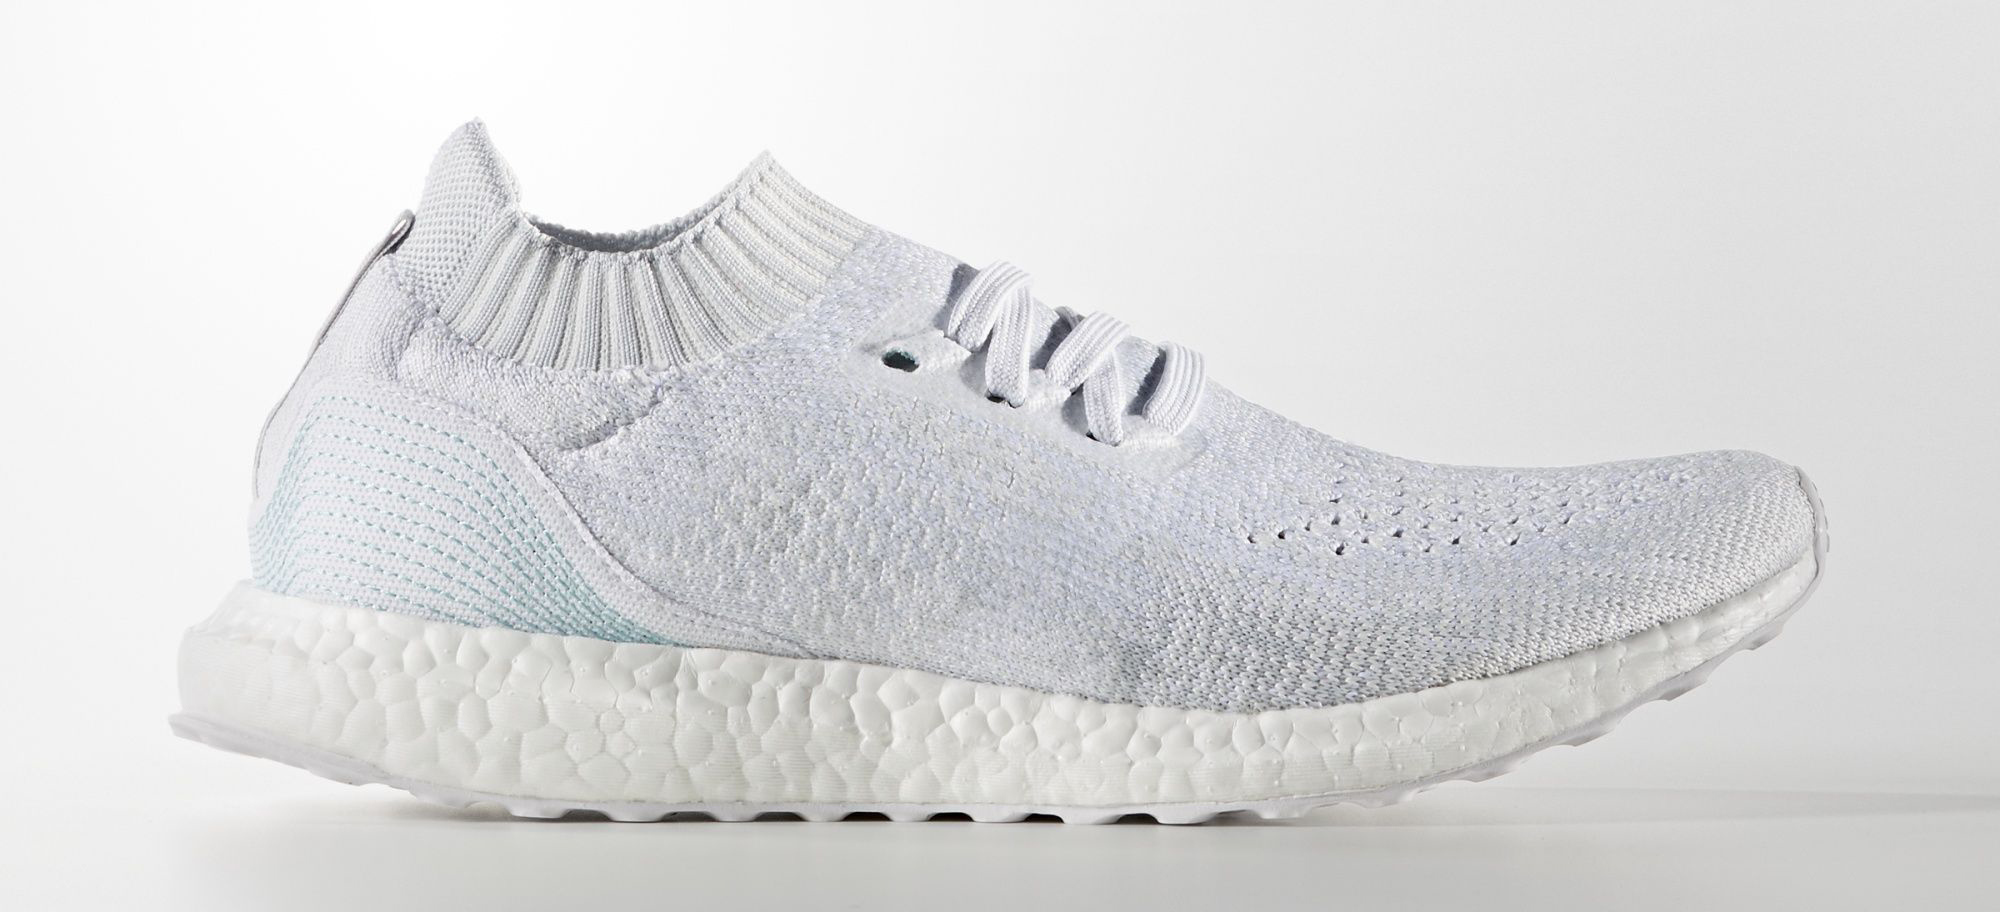 adidas shoes made from ocean plastic are finally here